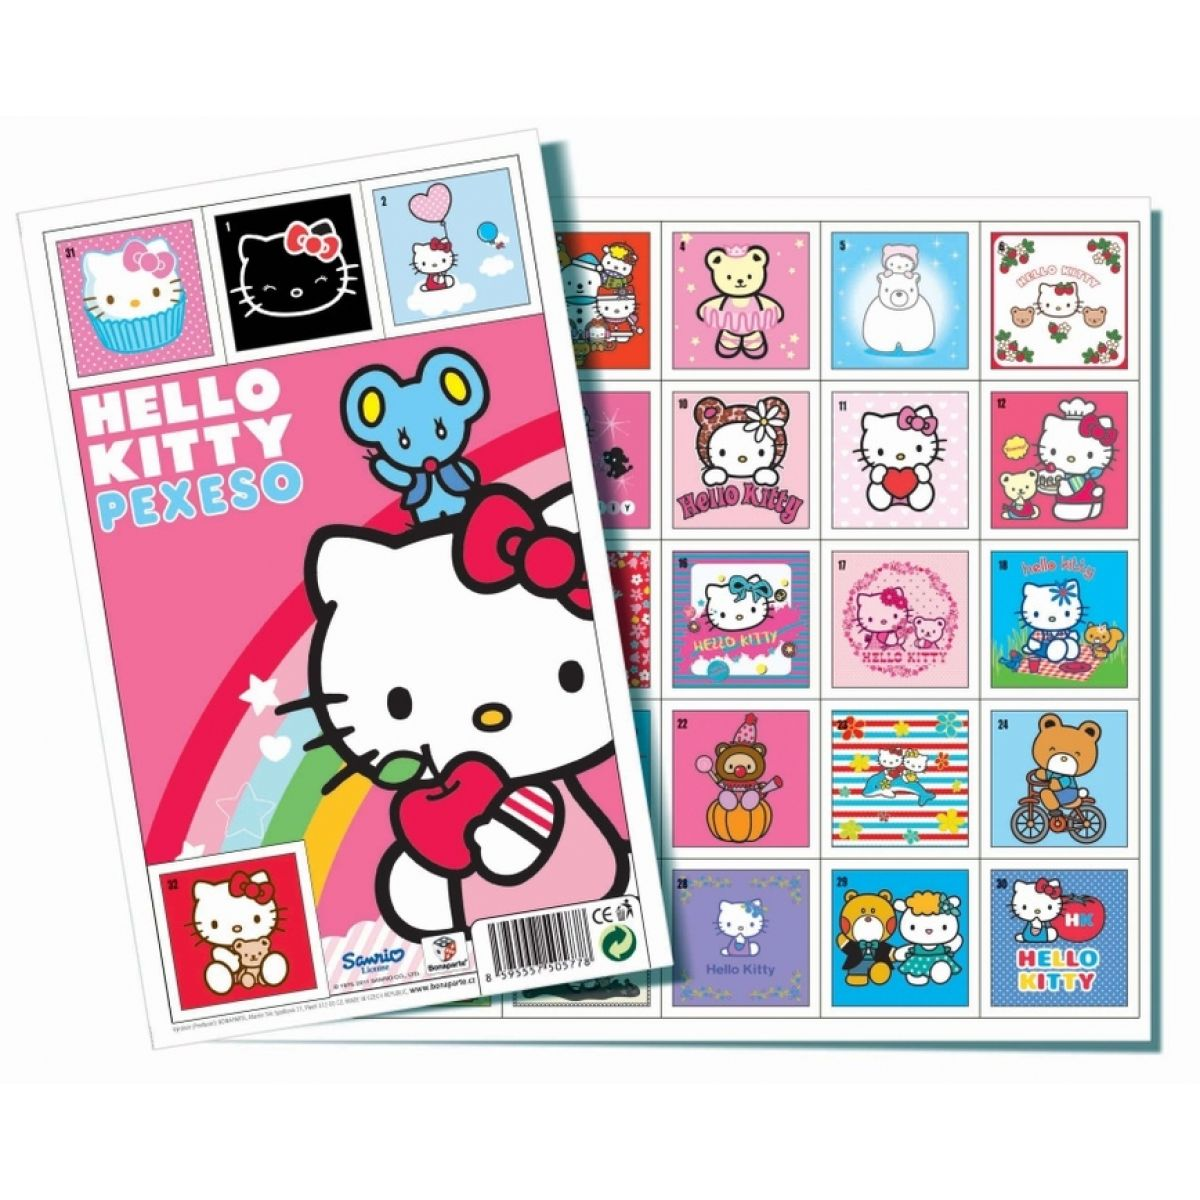 Bonaparte Pexeso Hello Kitty